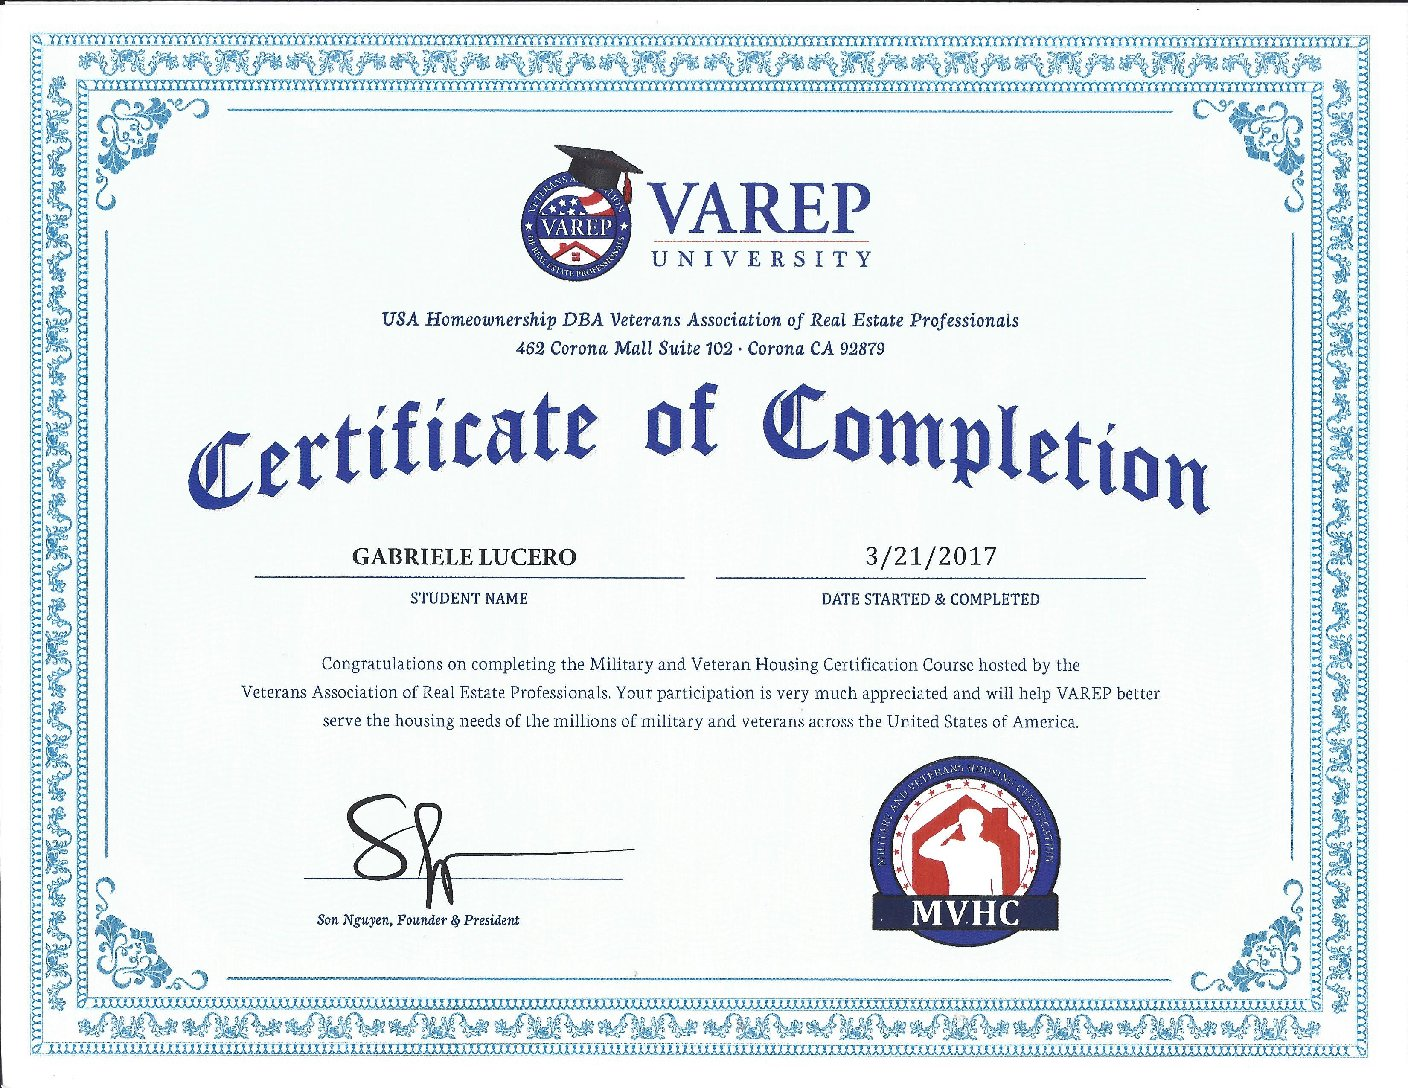 Certificate of Completion for VAREP